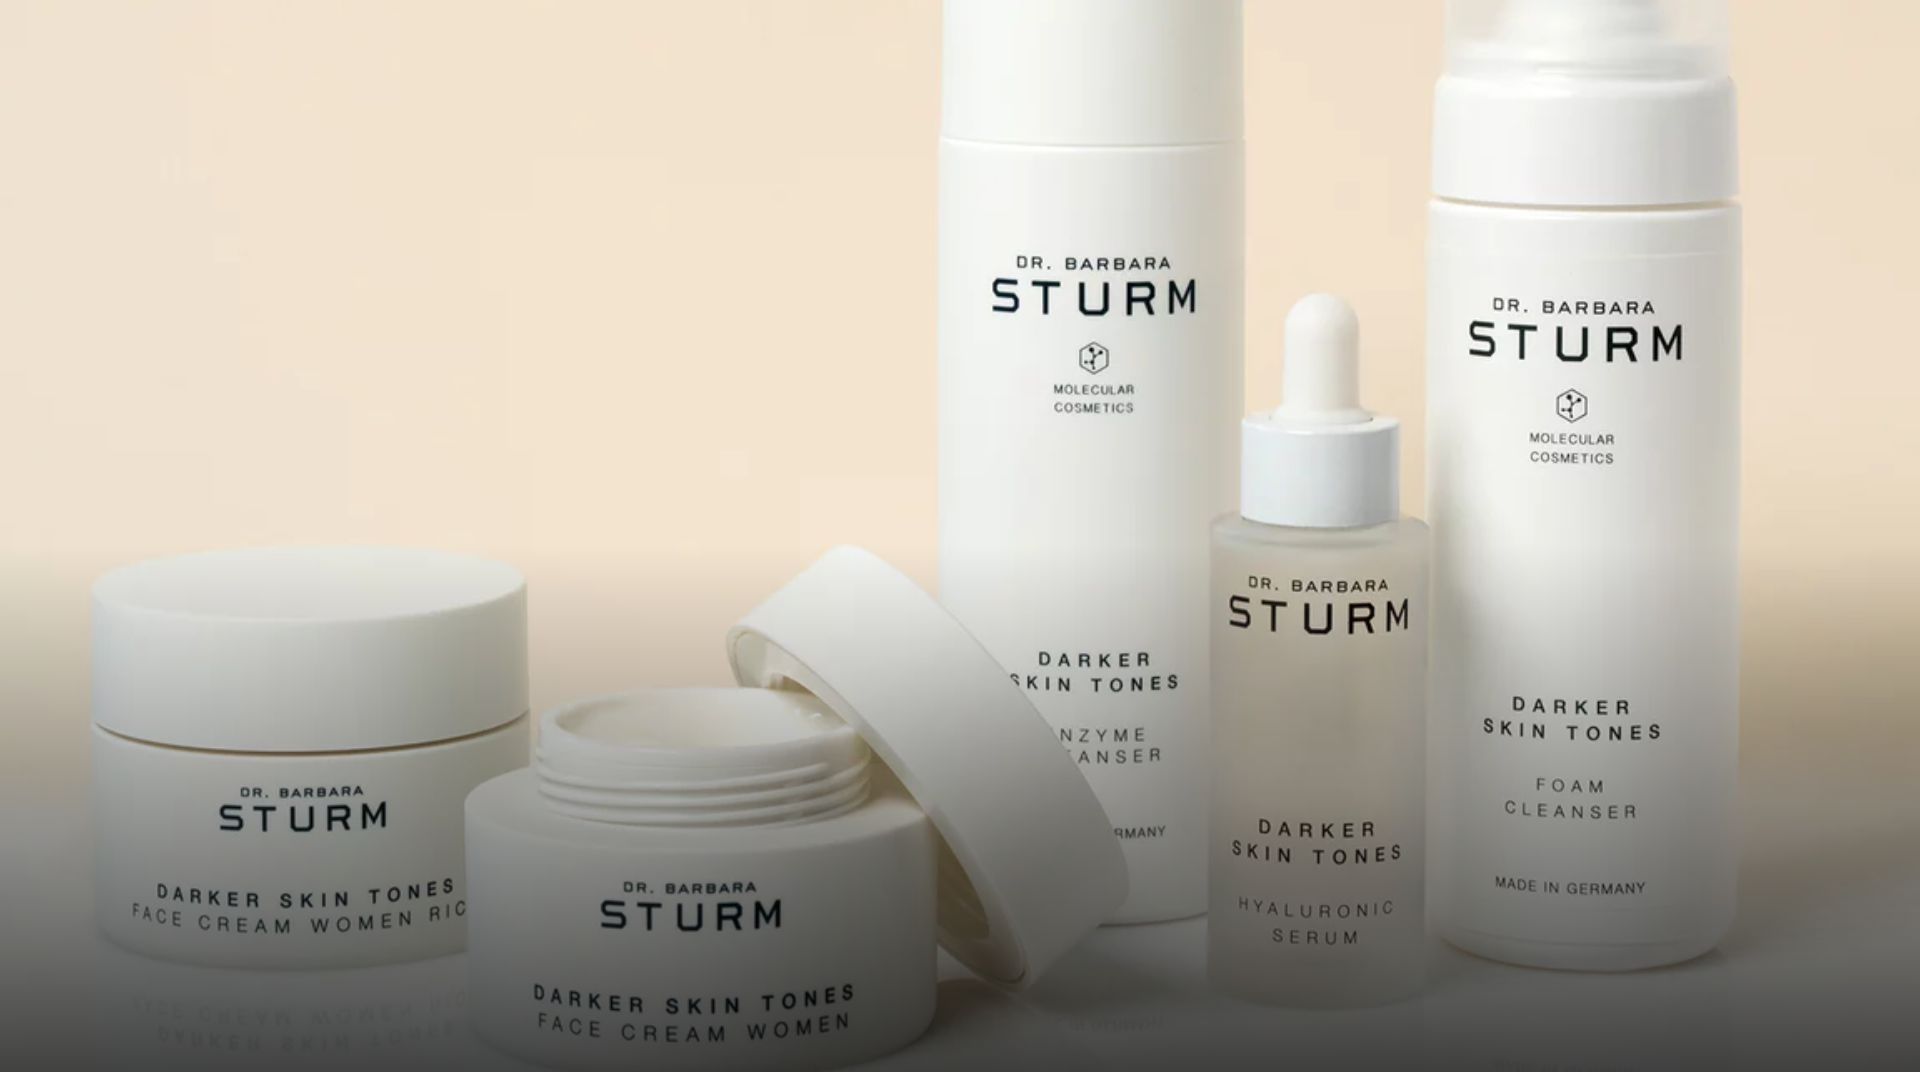 IS SKINCARE MAKING STRIDES TO BE MORE INCLUSIVE? -